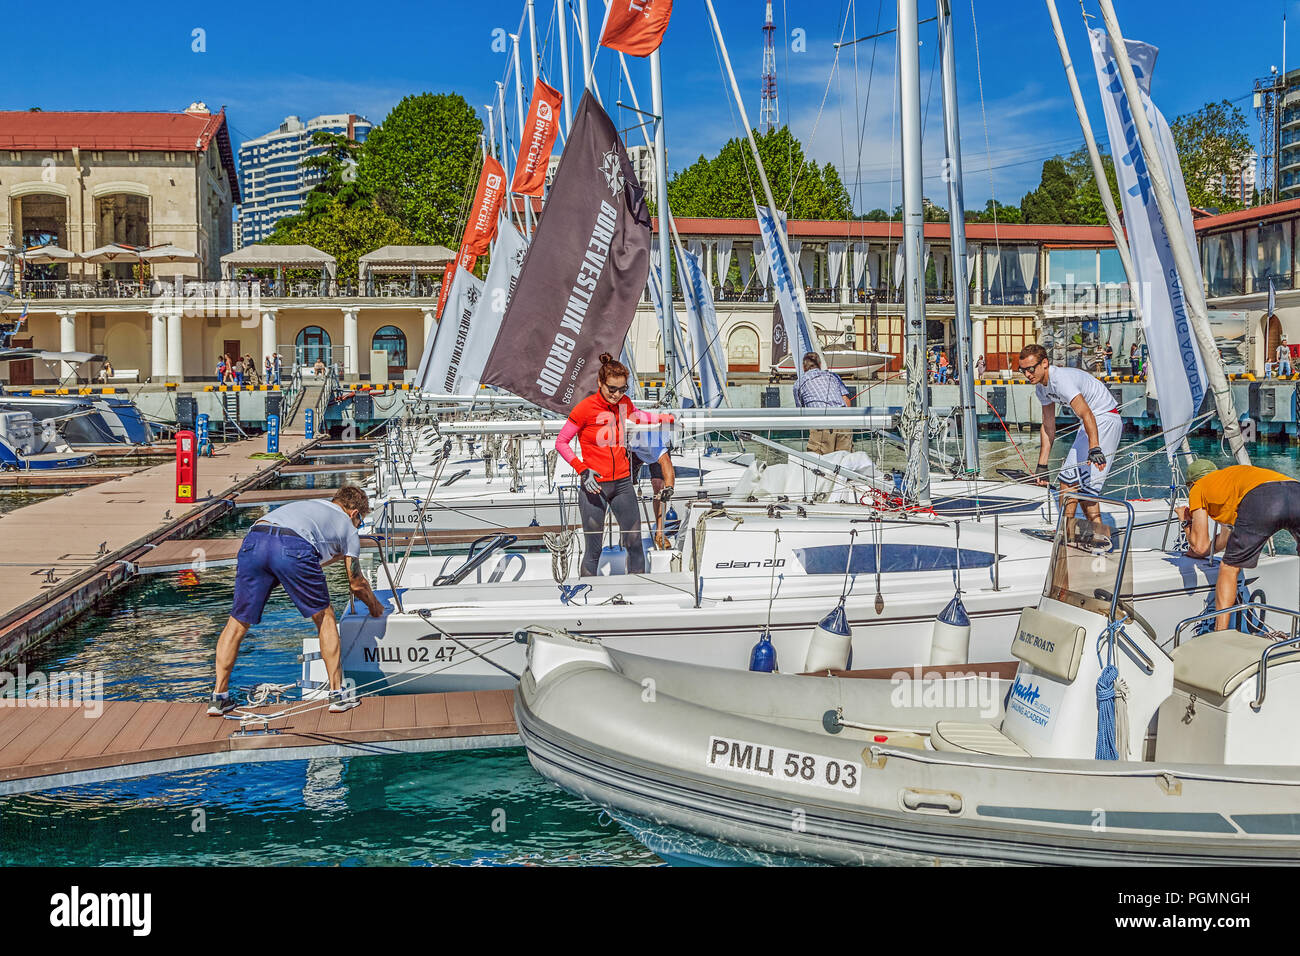 SOCHI, RUSSIA - MAY 21, 2016: Yachtsmen on the pier. - Stock Image